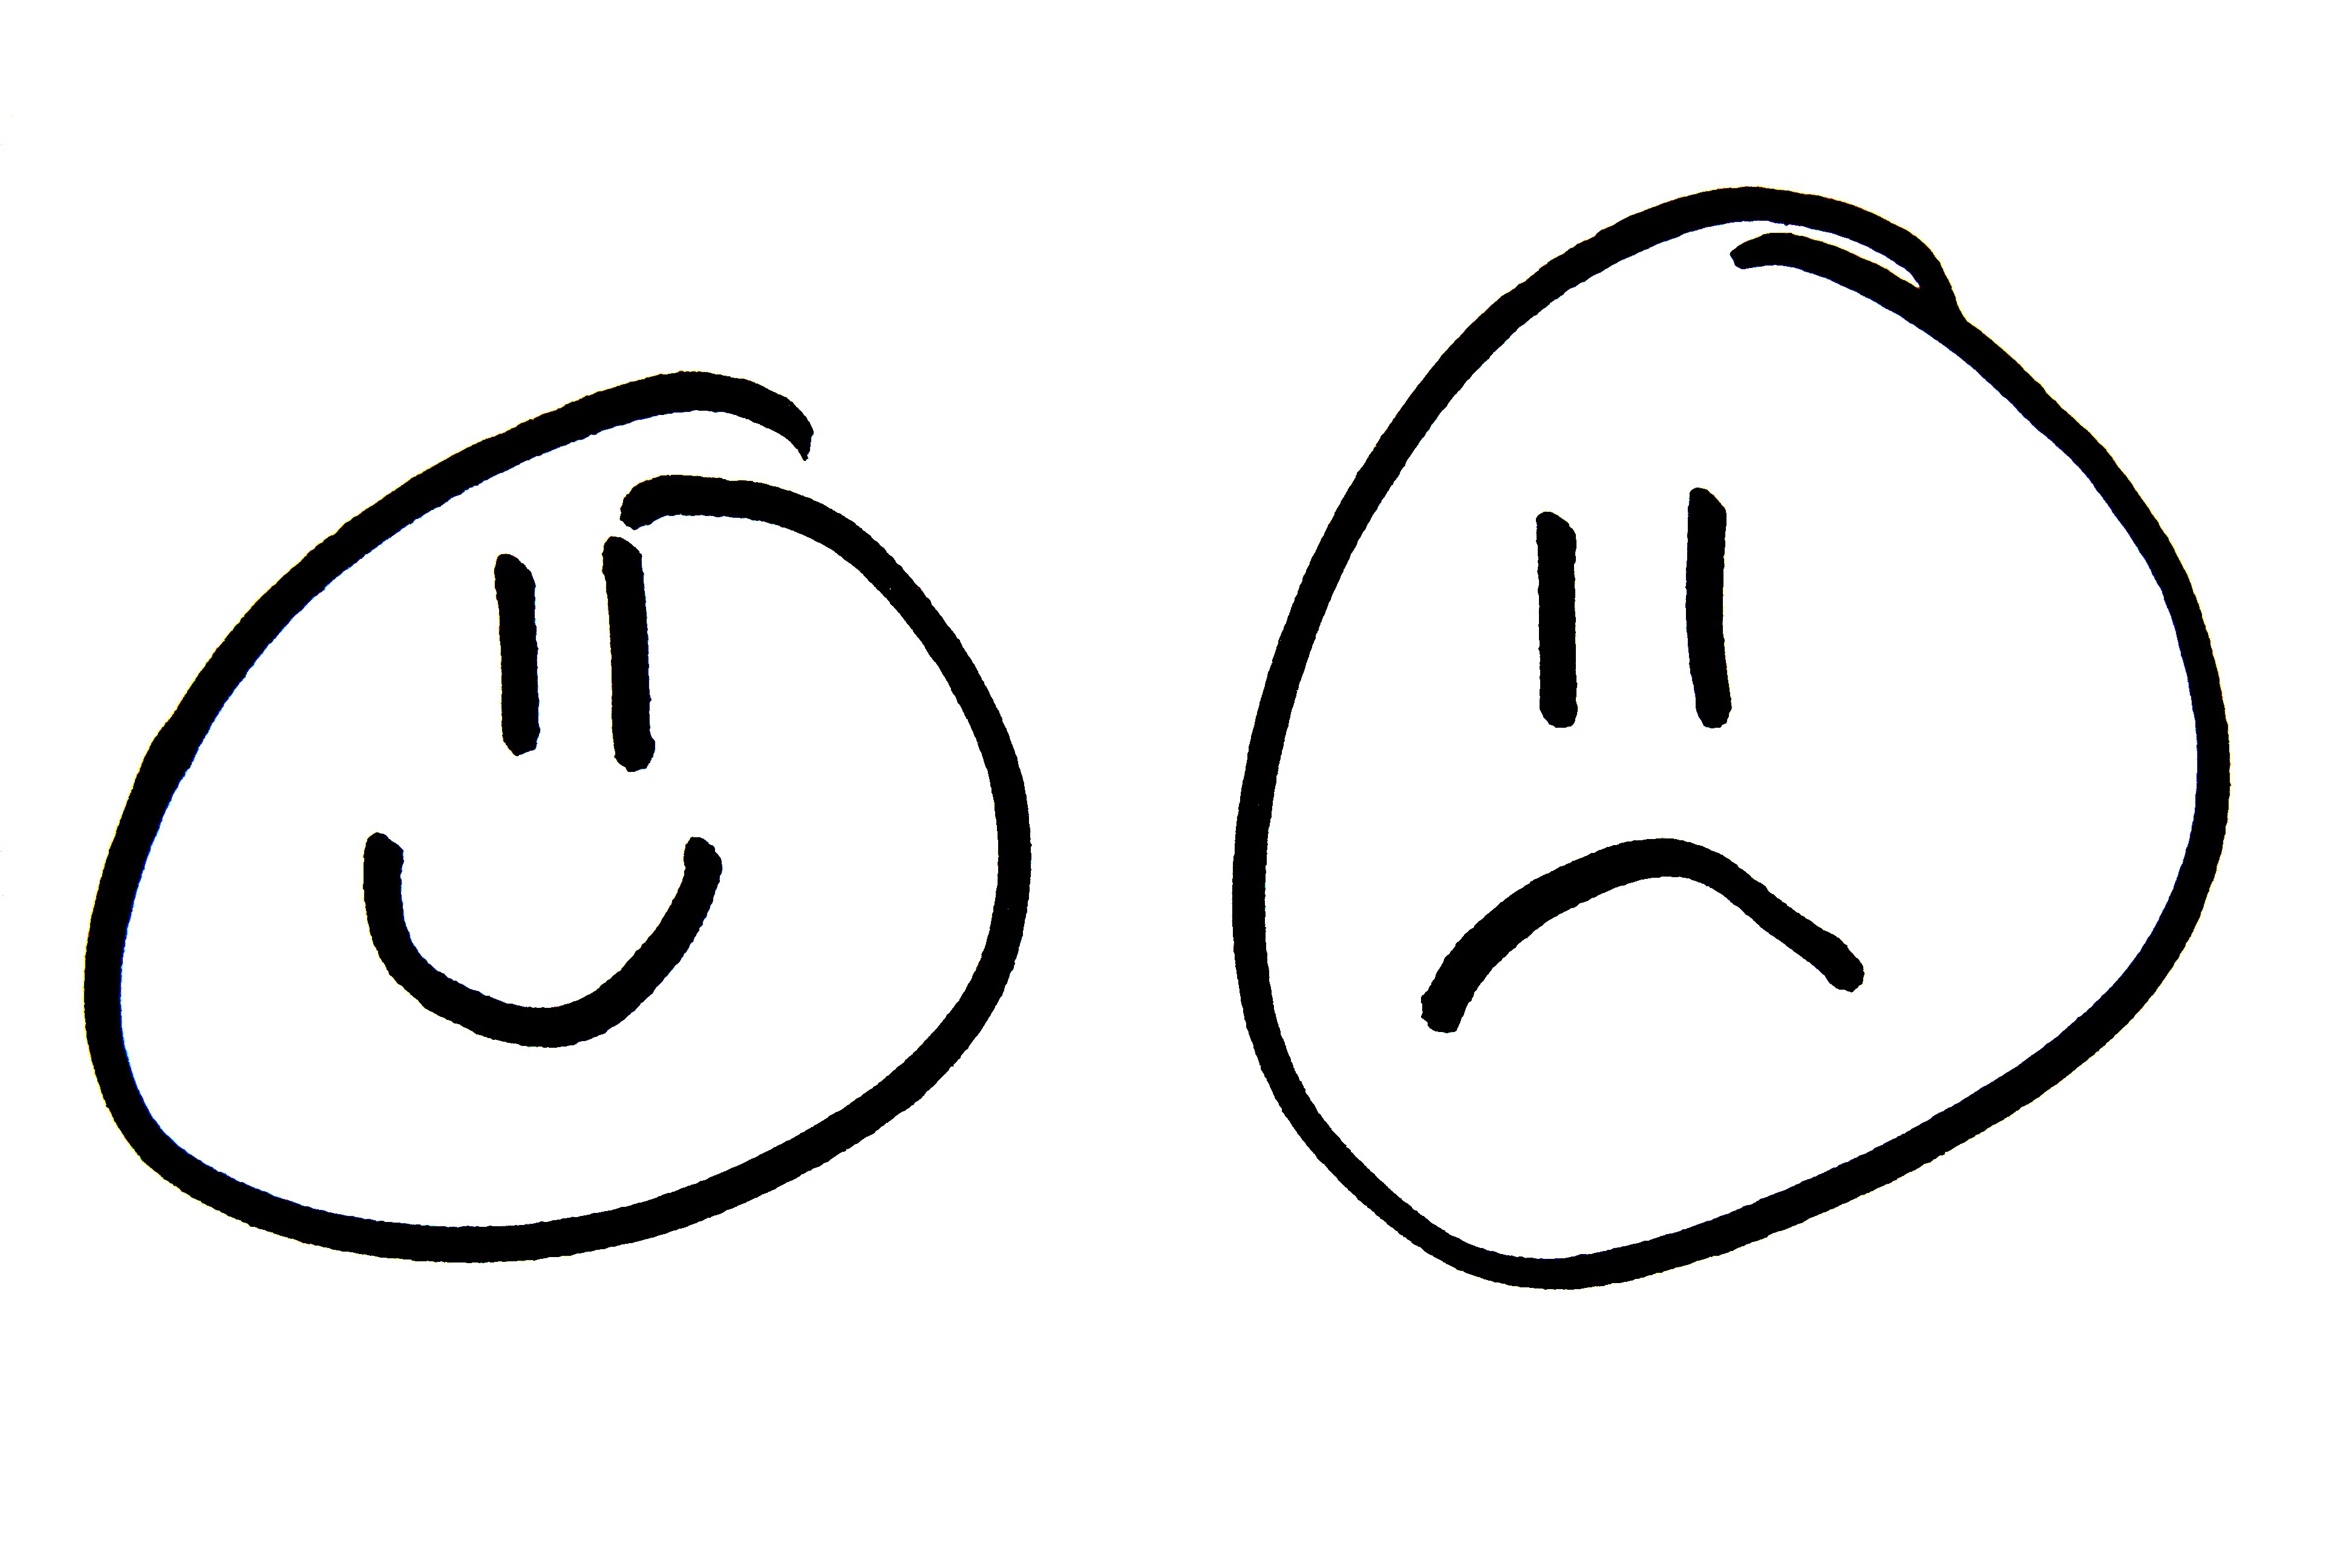 3888x2592 Best Black And White Smiley Face